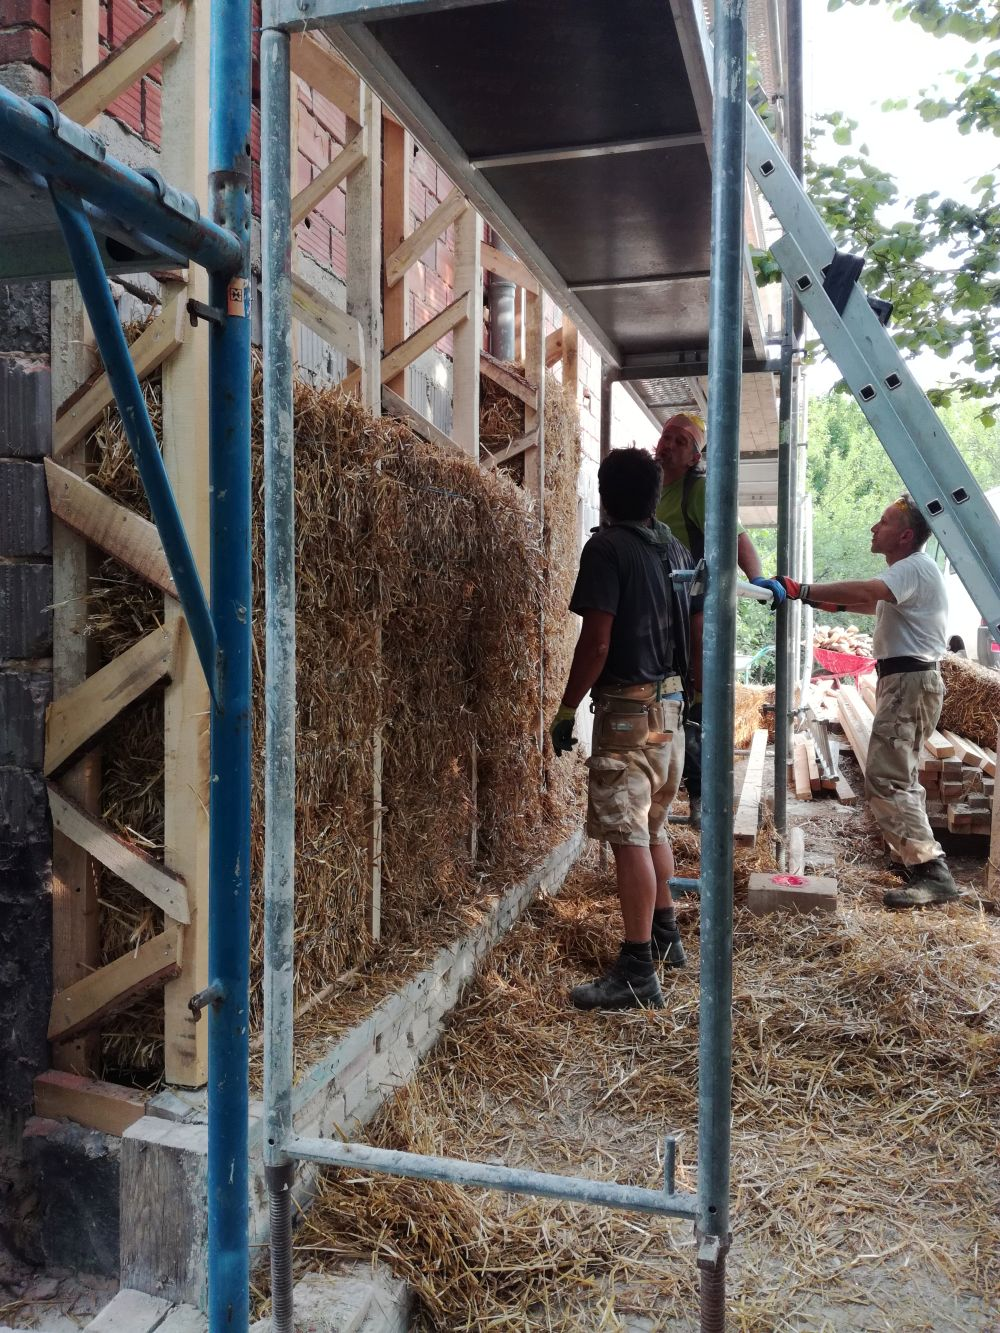 Strawbales to insulate the house